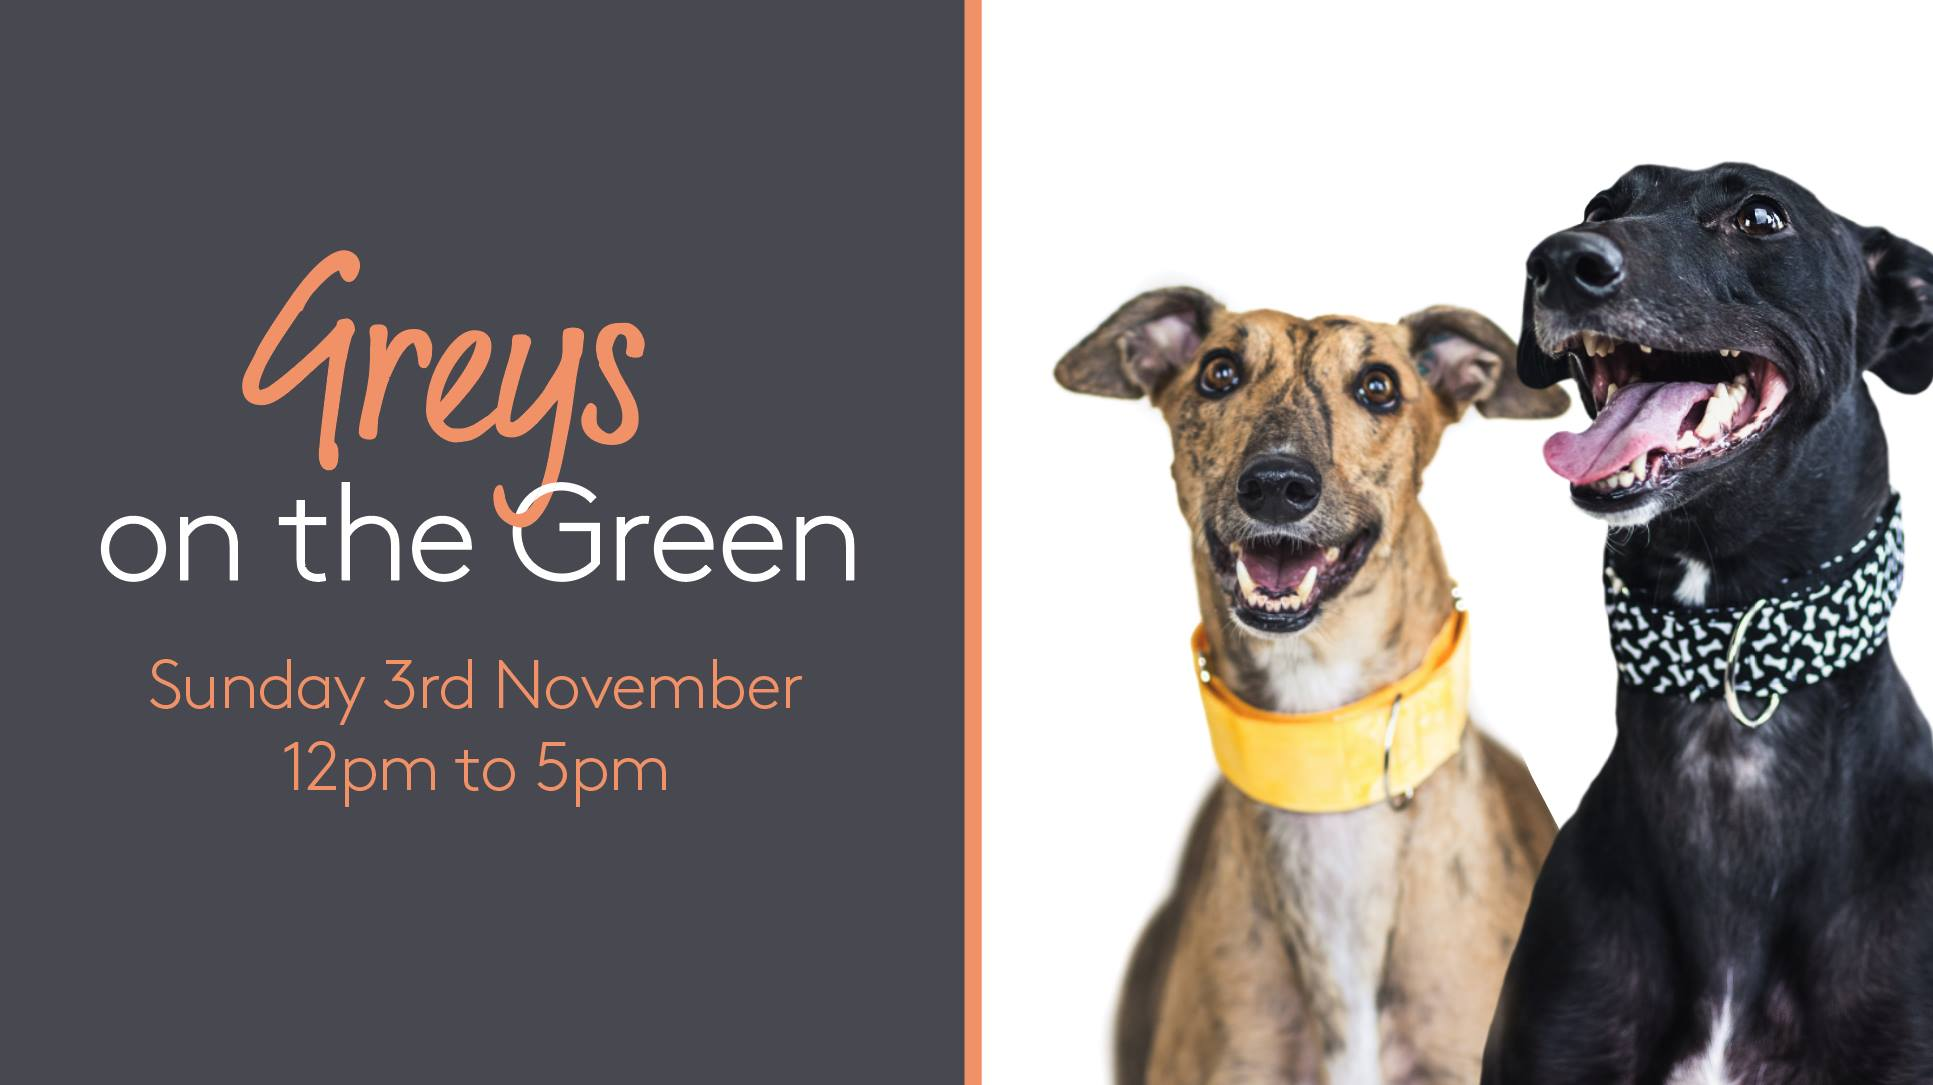 Greys on The Green event image